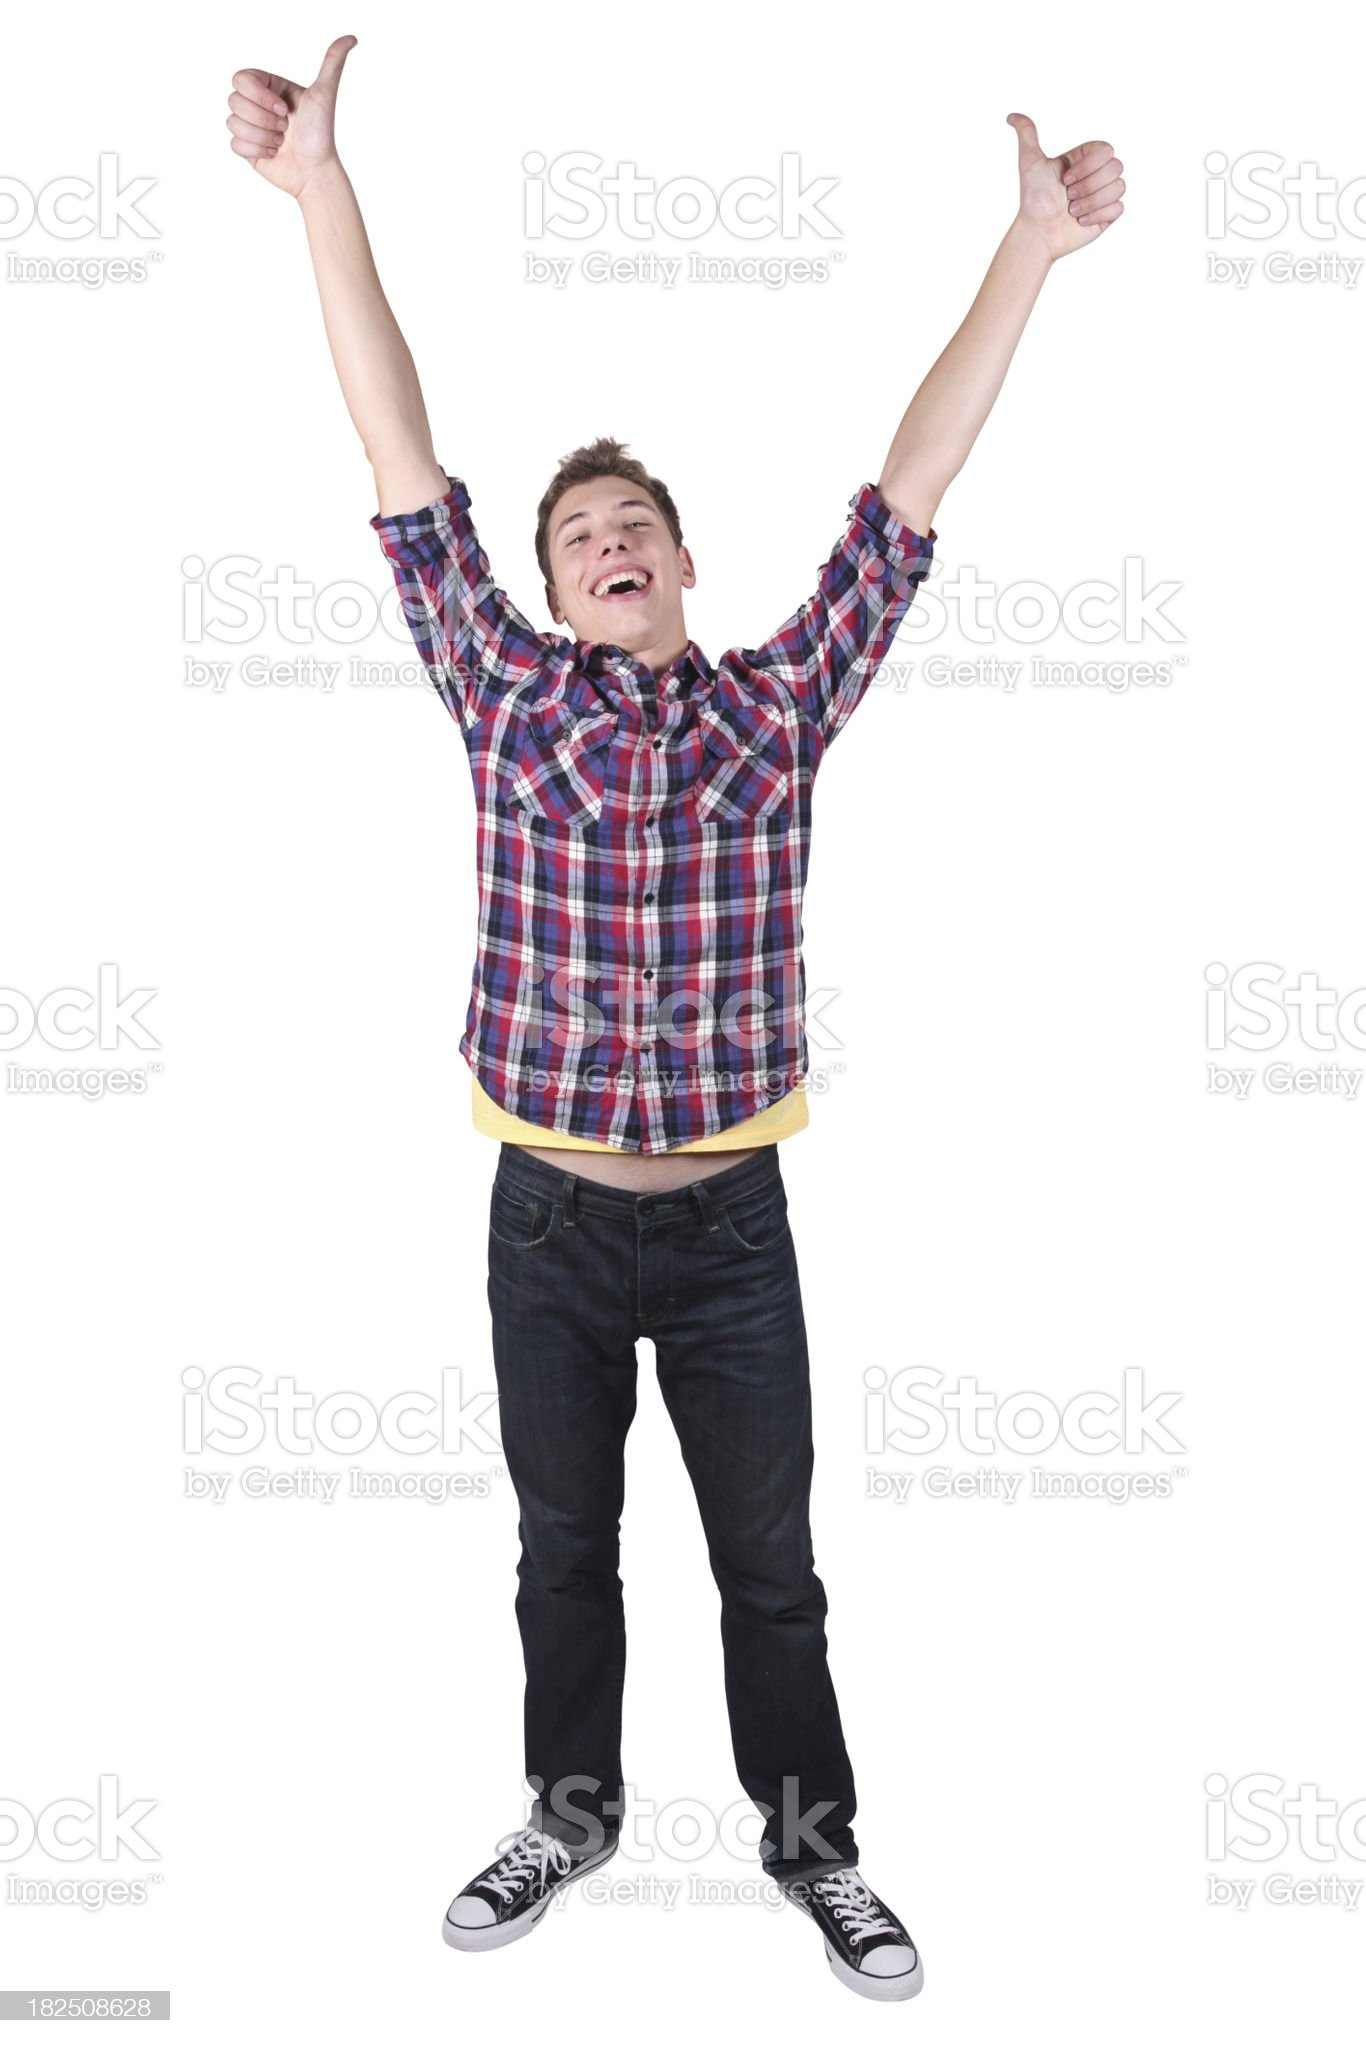 Isolated casual male arms raised and thumbs up royalty-free stock photo